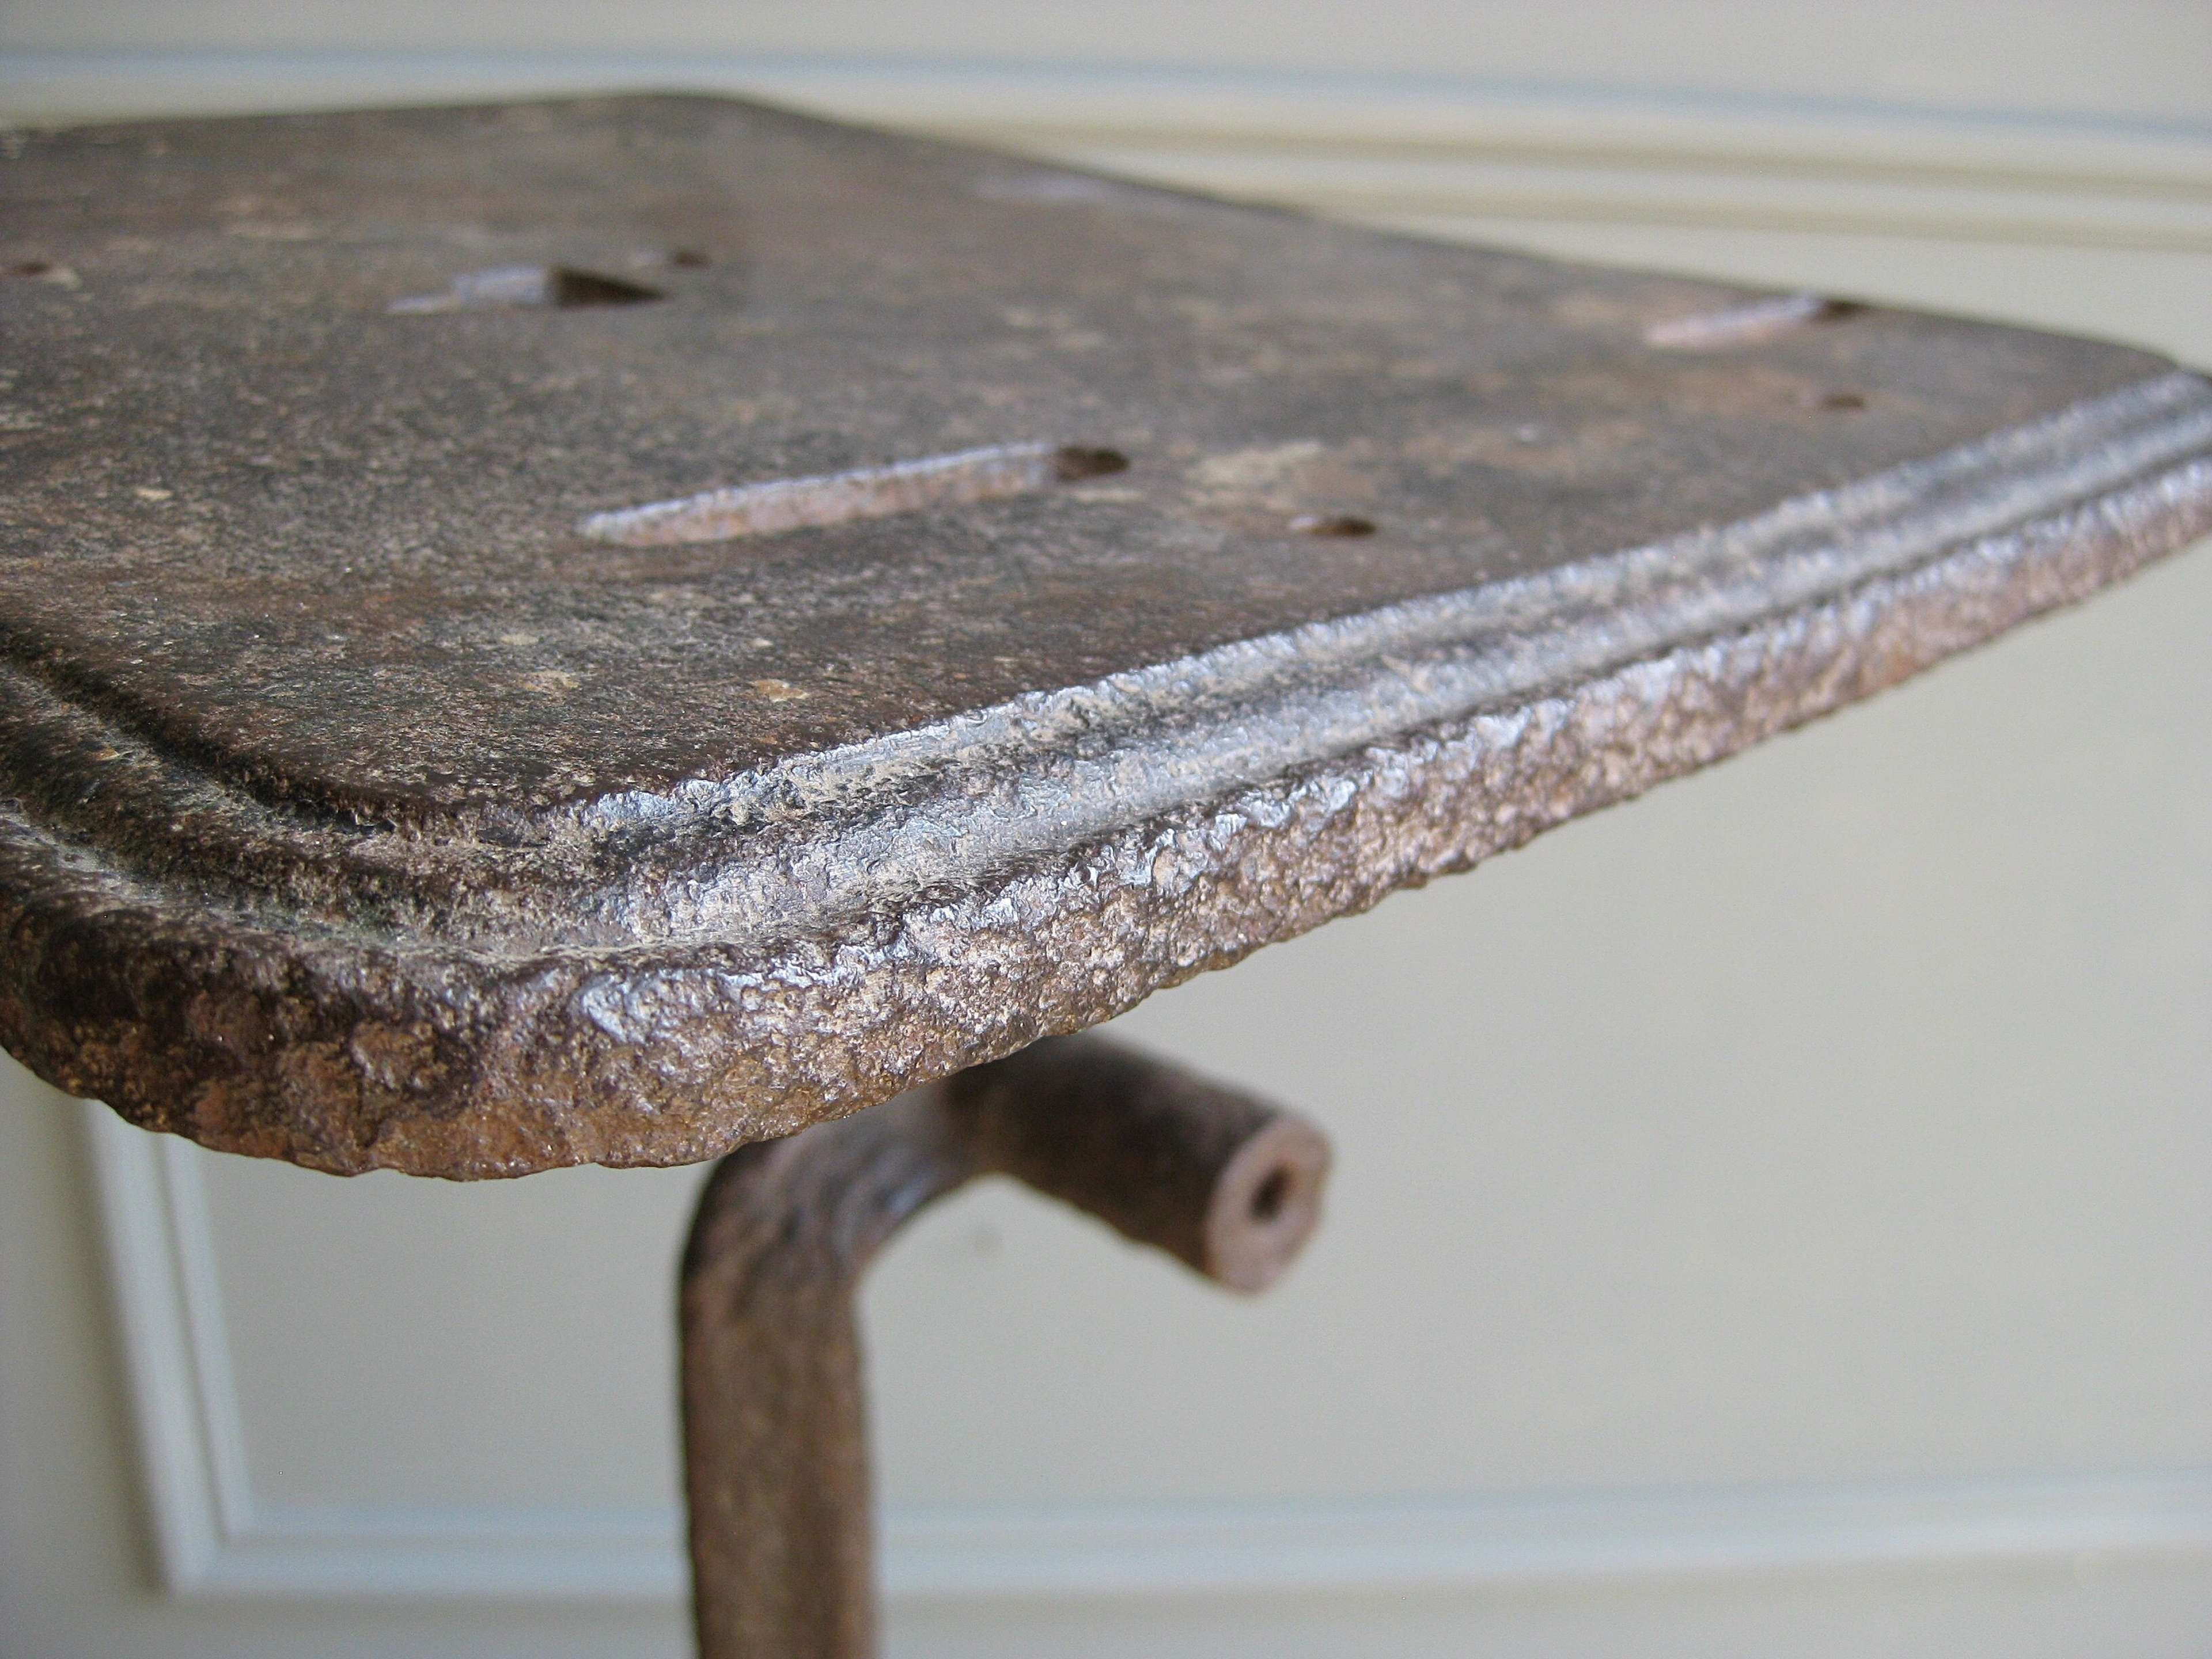 19th century cast iron machinists table